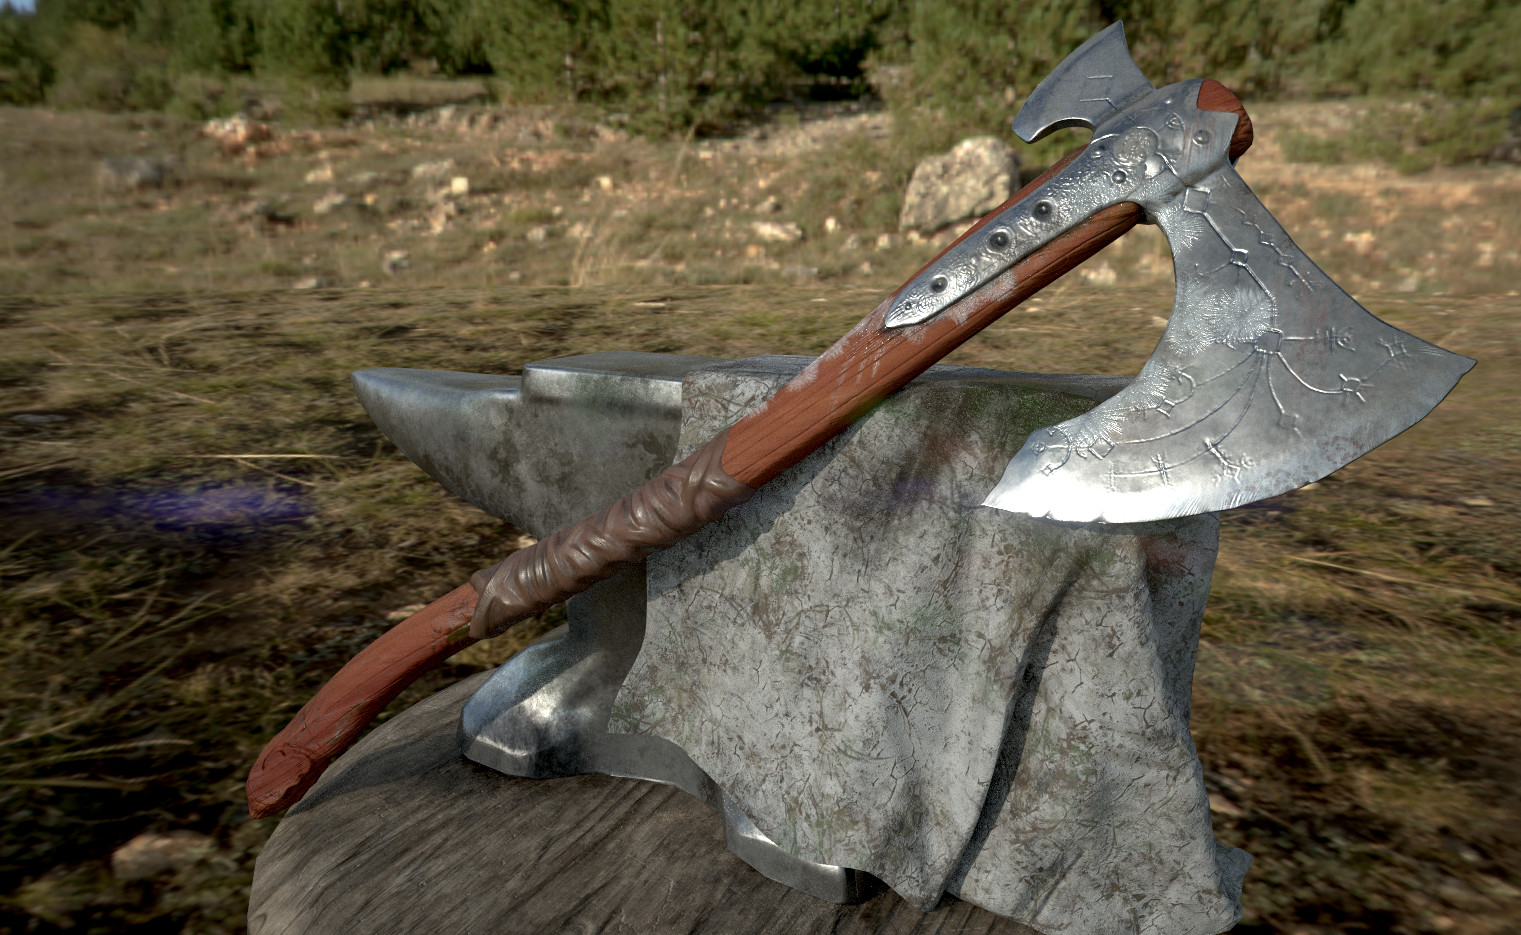 GOW Axe: Zbrush, Maya, Substance GOW axe